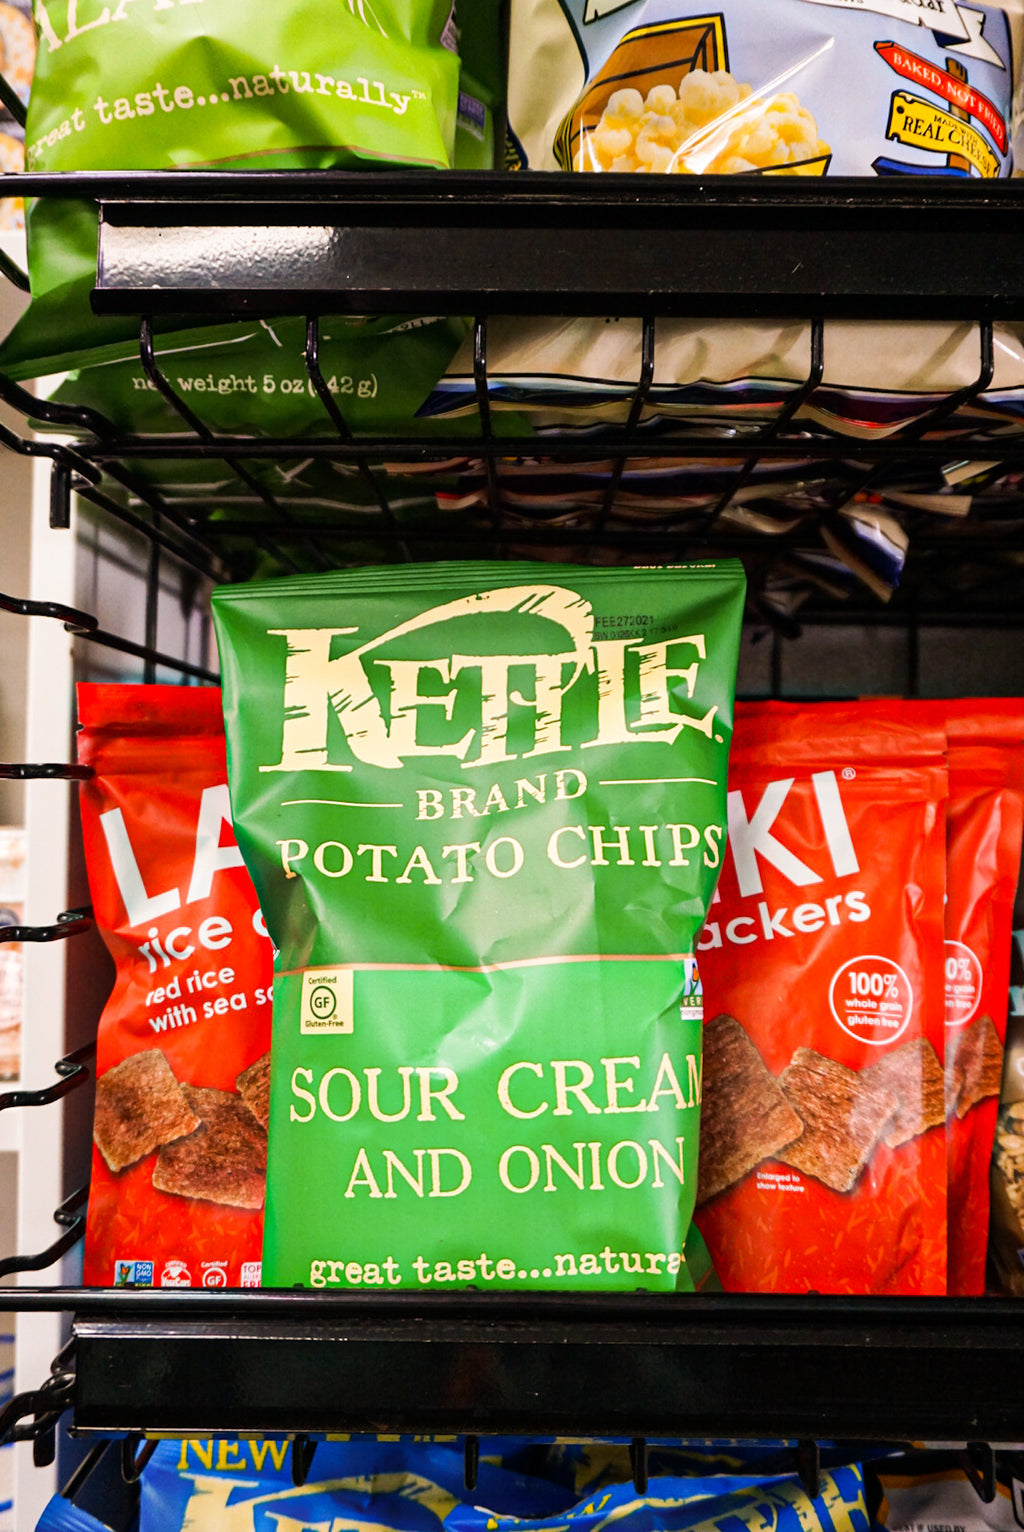 Kettle Potato Chips Sour Cream and Onion 5 oz